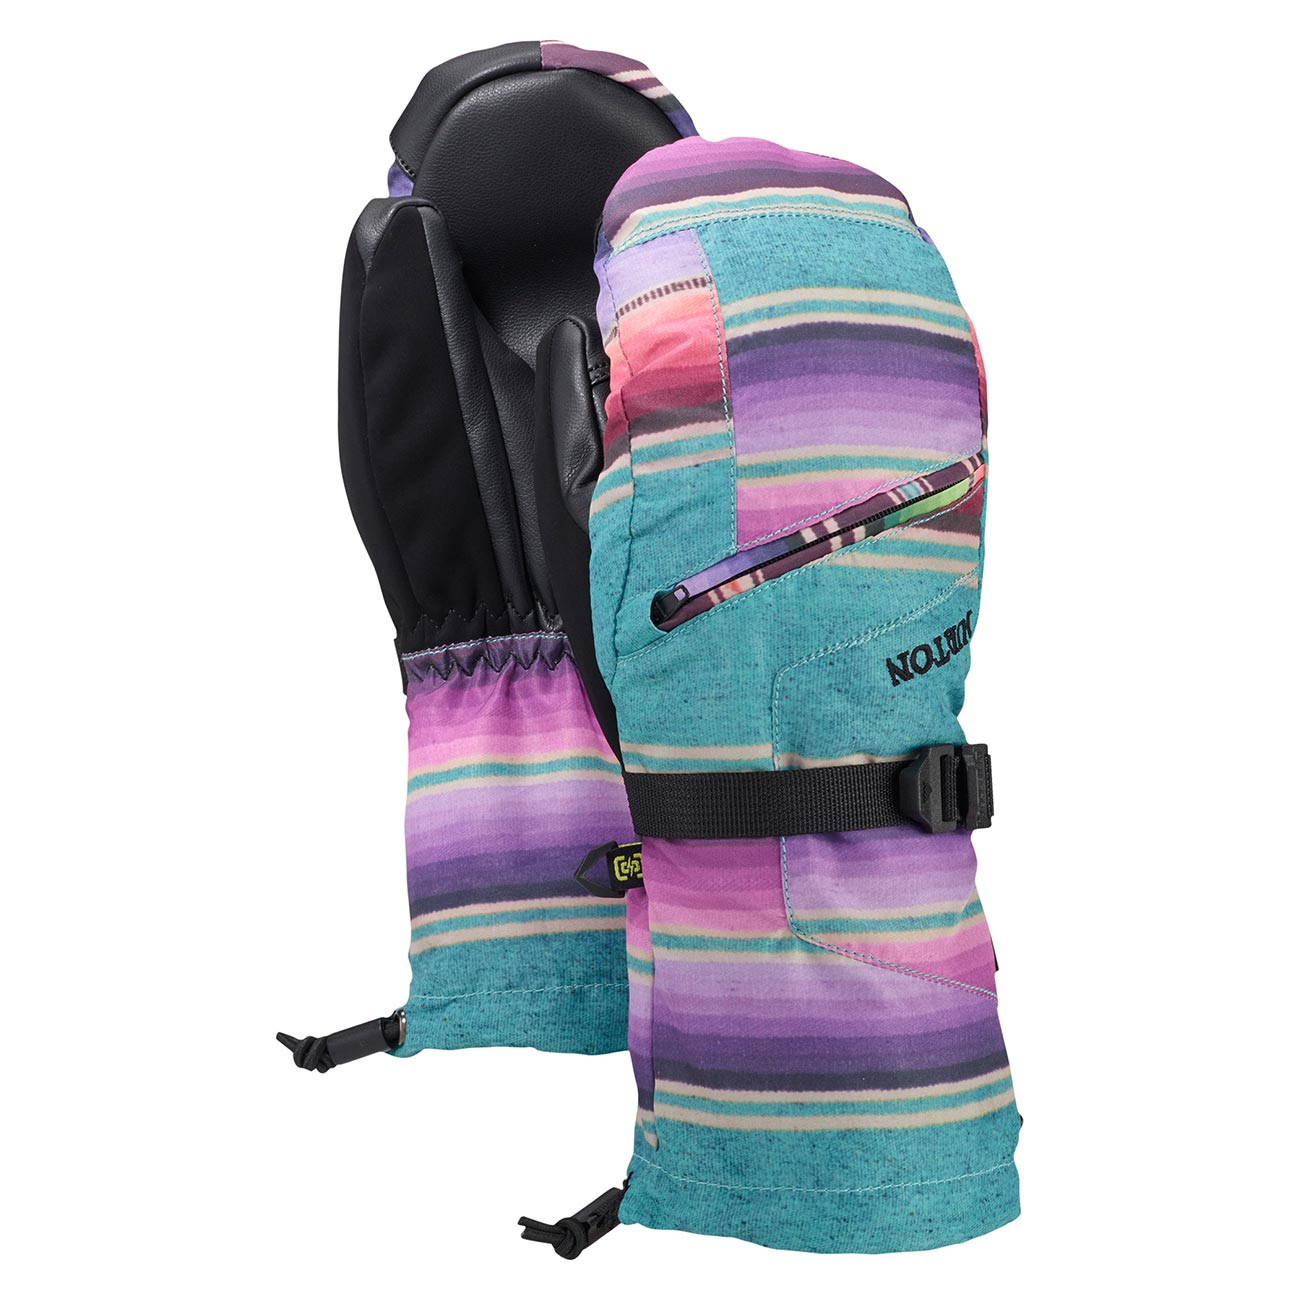 Rukavice Burton Youth Vent Mitt mijita stripe